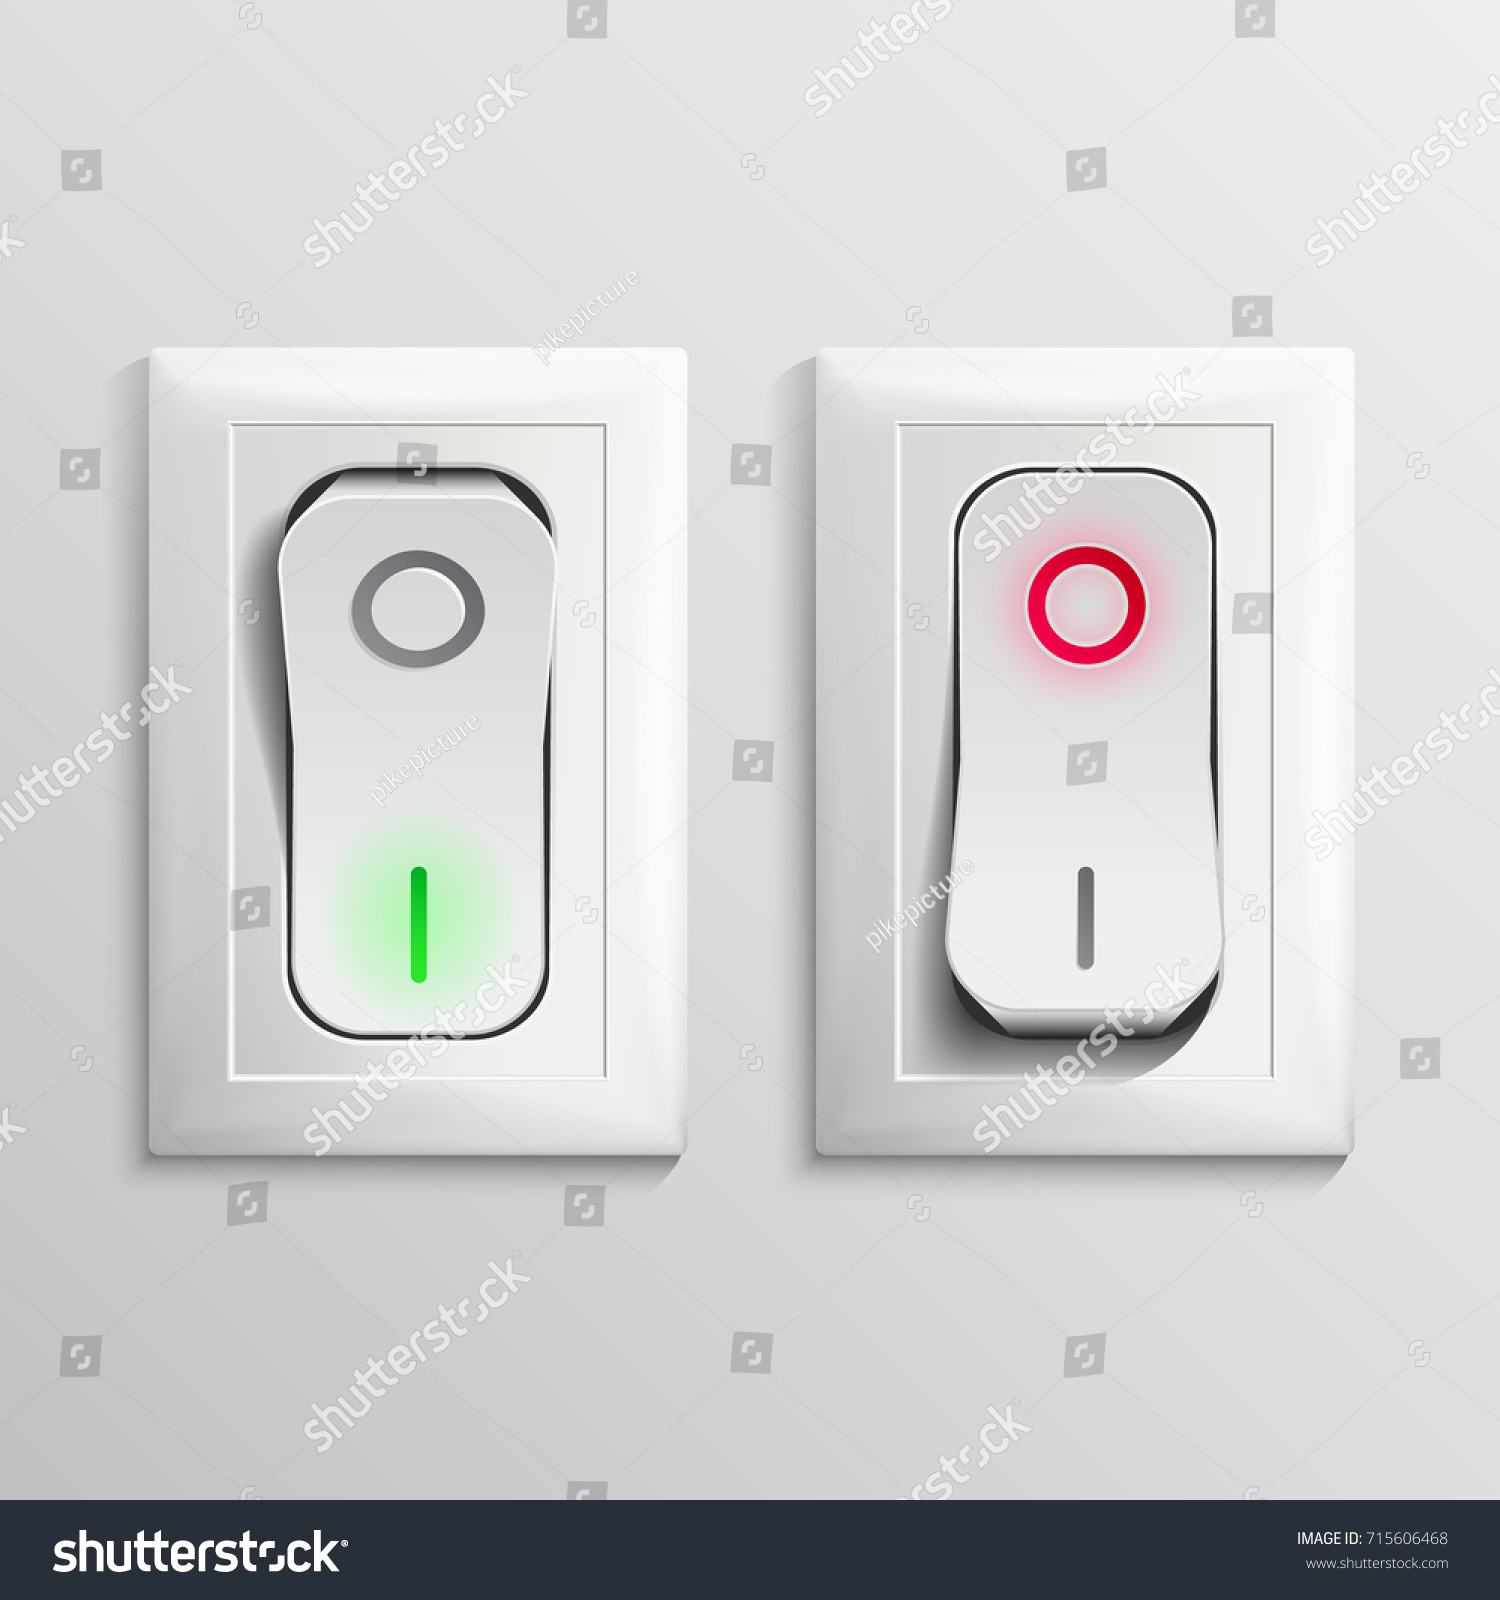 Toggle Switch Vector Plastic Switches On Stock Vector (Royalty Free ...